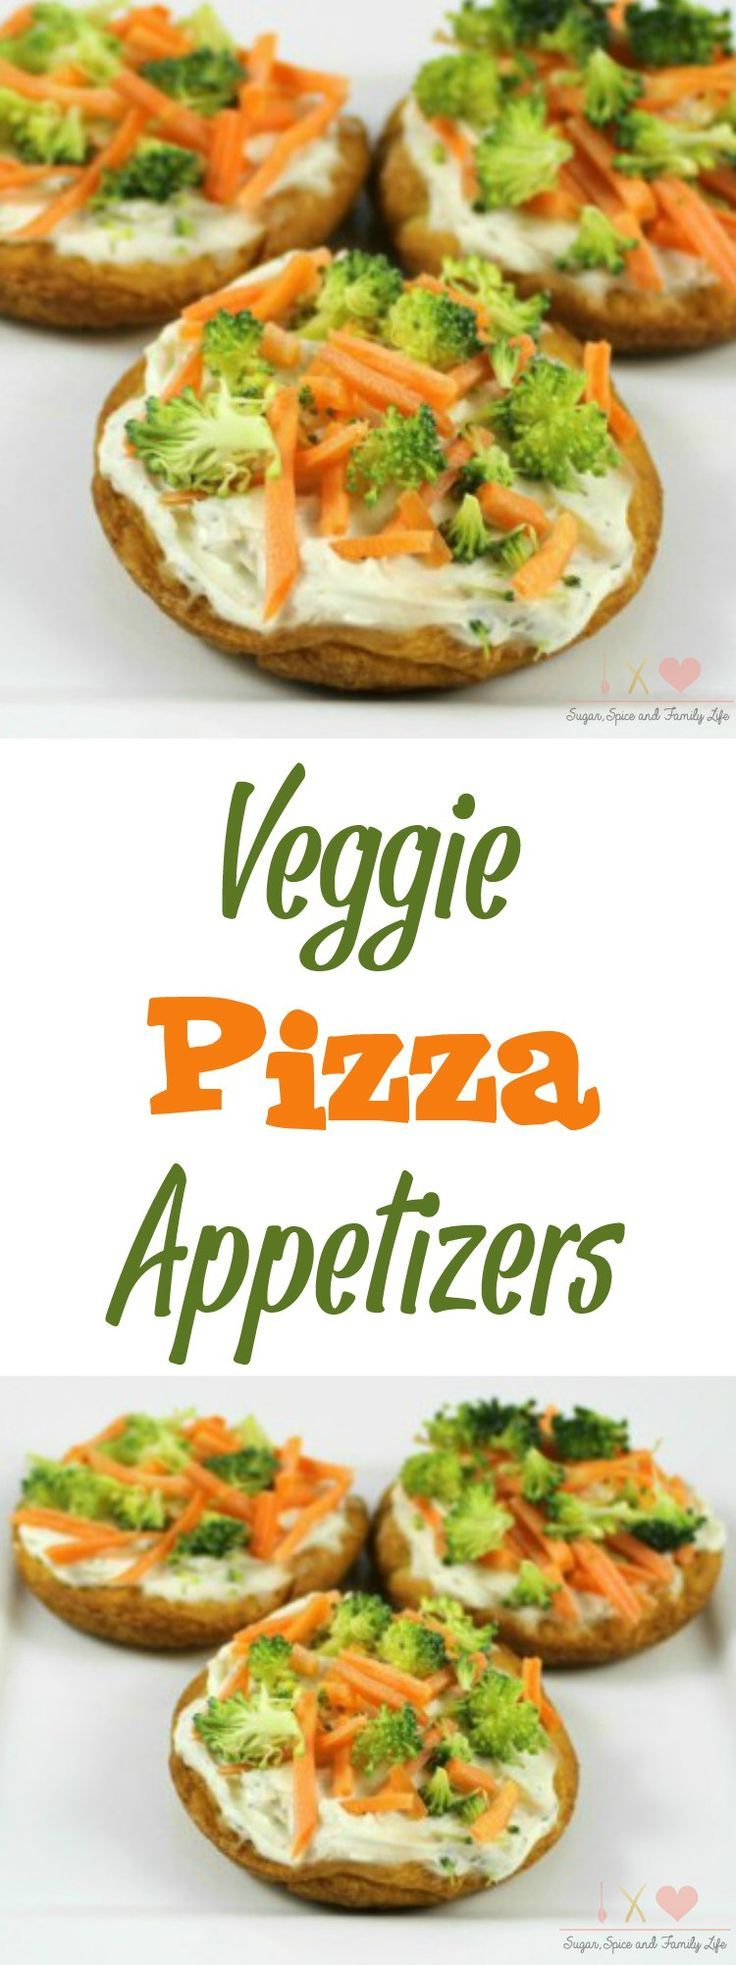 Veggie Pizza Appetizers make a great snack or party food. They have a crescent roll crust with ranch cream cheese spread and topped with vegetables like broccoli and carrots. - Veggie Pizza Appetizers Recipe on Sugar, Spice and Family Life